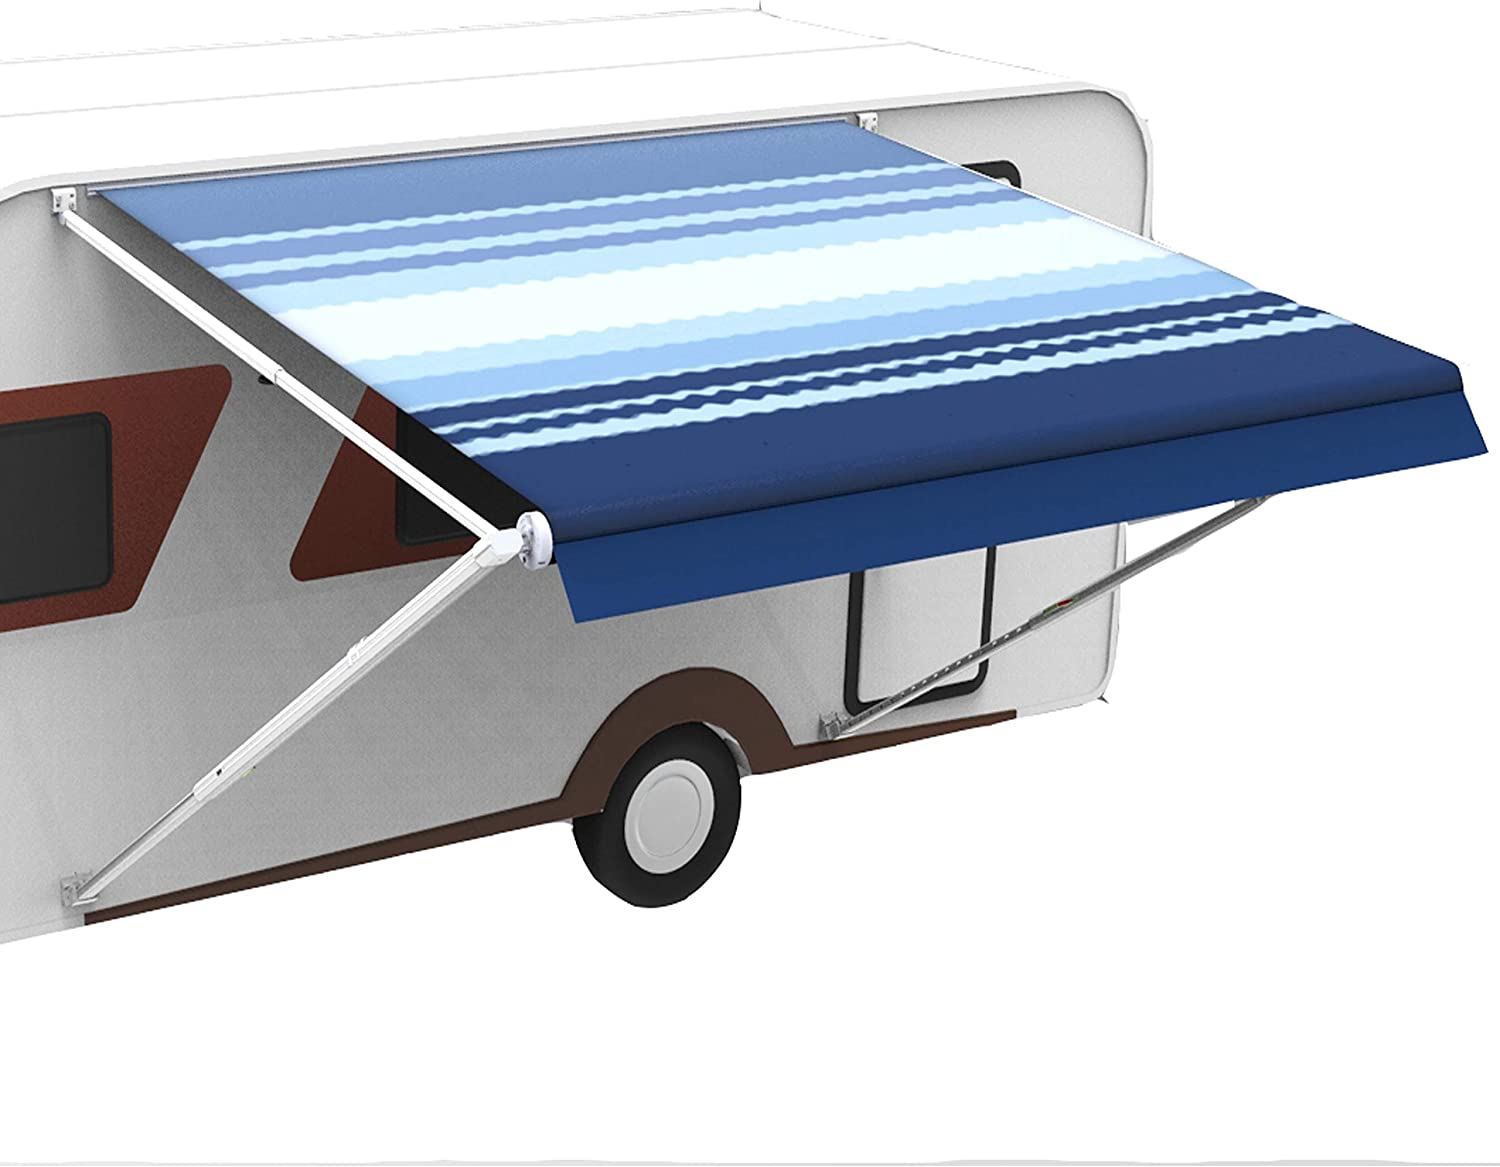 Amazon Com Awnlux Rv Canopy Awning Fabric For 11 Feet Carefree Roll Up Awning Fabric Size 10 Feet 2 Inch 100 Waterproof Uv Resistance Blue White Blue Automotive